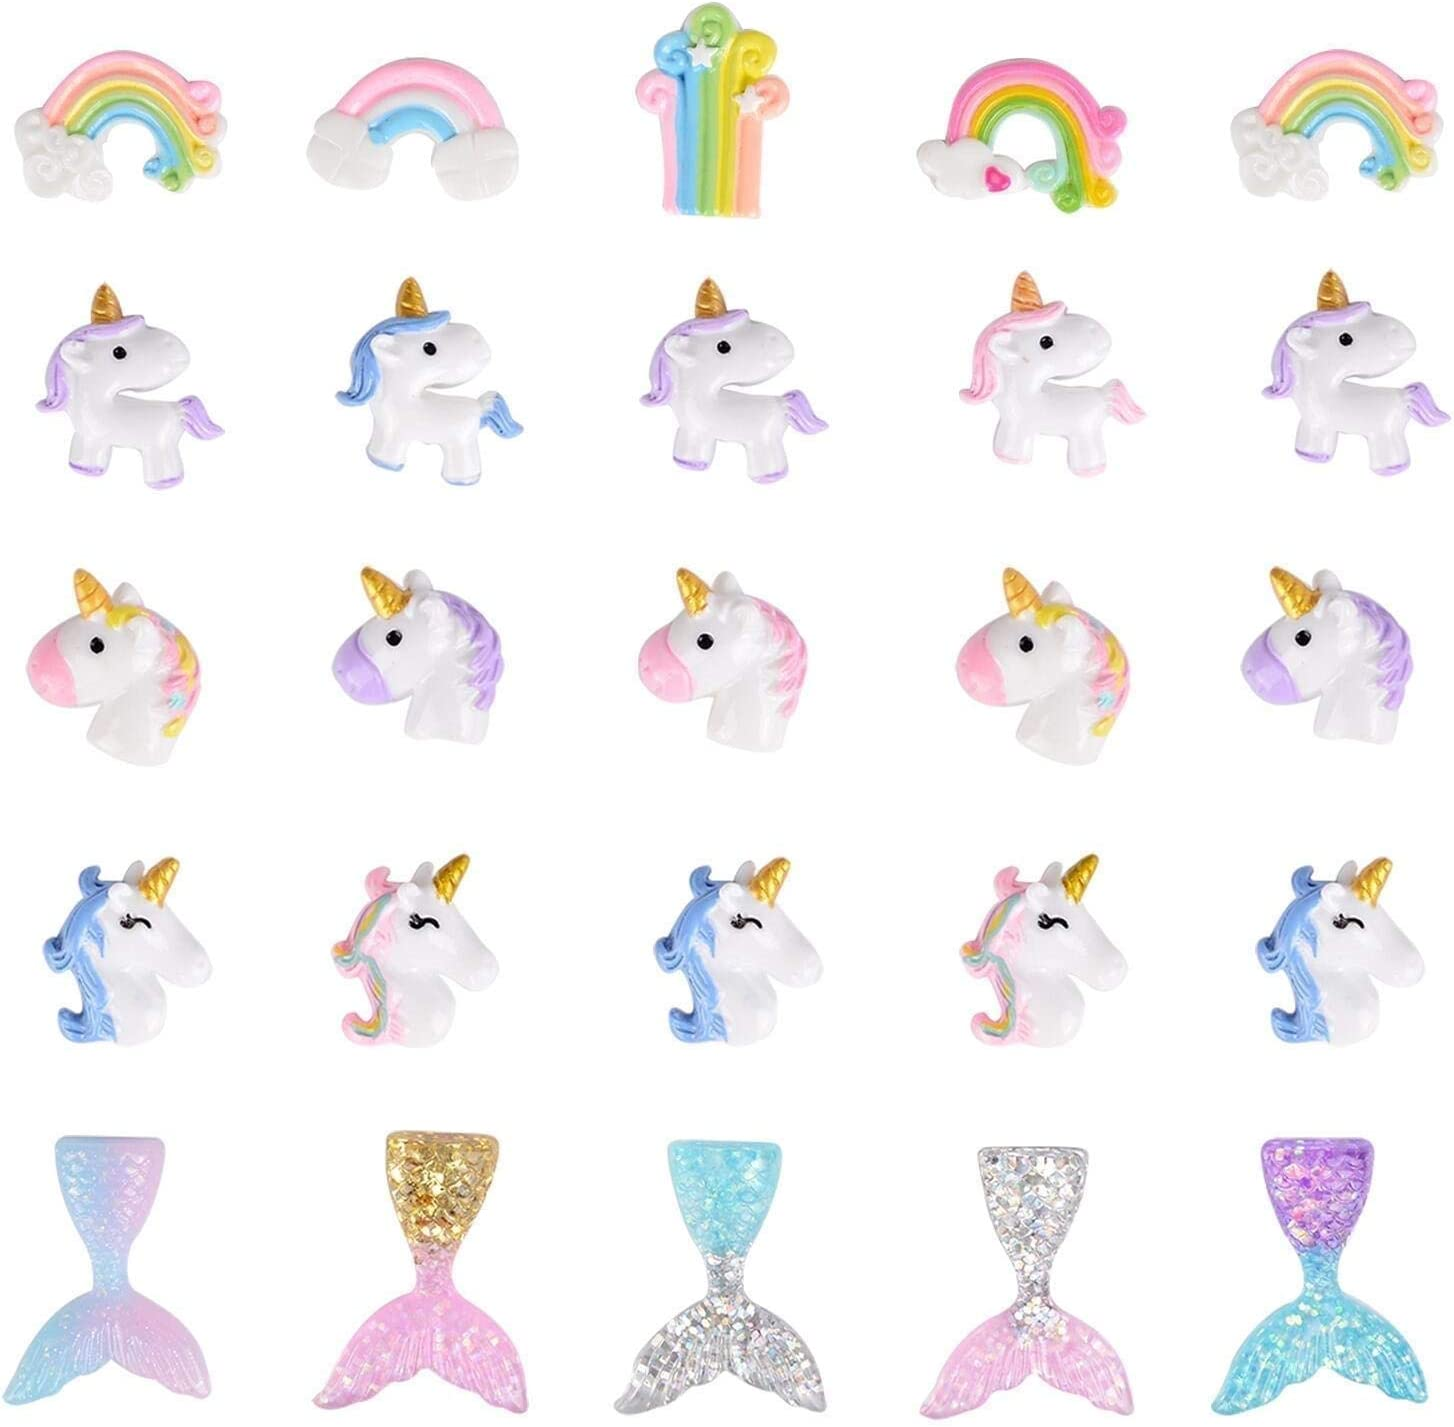 4 Mermaid Resin Charms Assorted Colors 3D K185